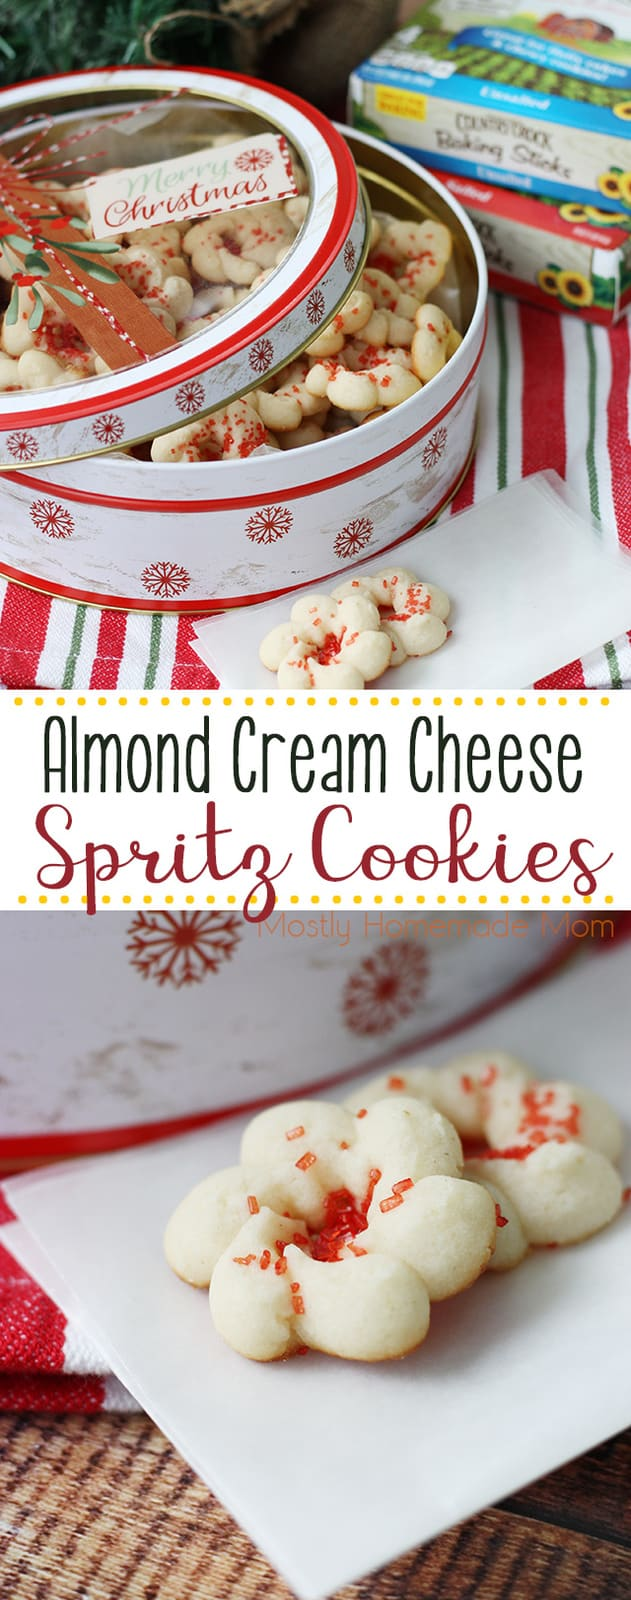 Almond Cream Cheese Spritz Cookies - perfect for cookie trays! Simple shortbread dough with rich cream cheese make these cookies irresistible! #christmascookies #spritzcookies #recipe #dessert